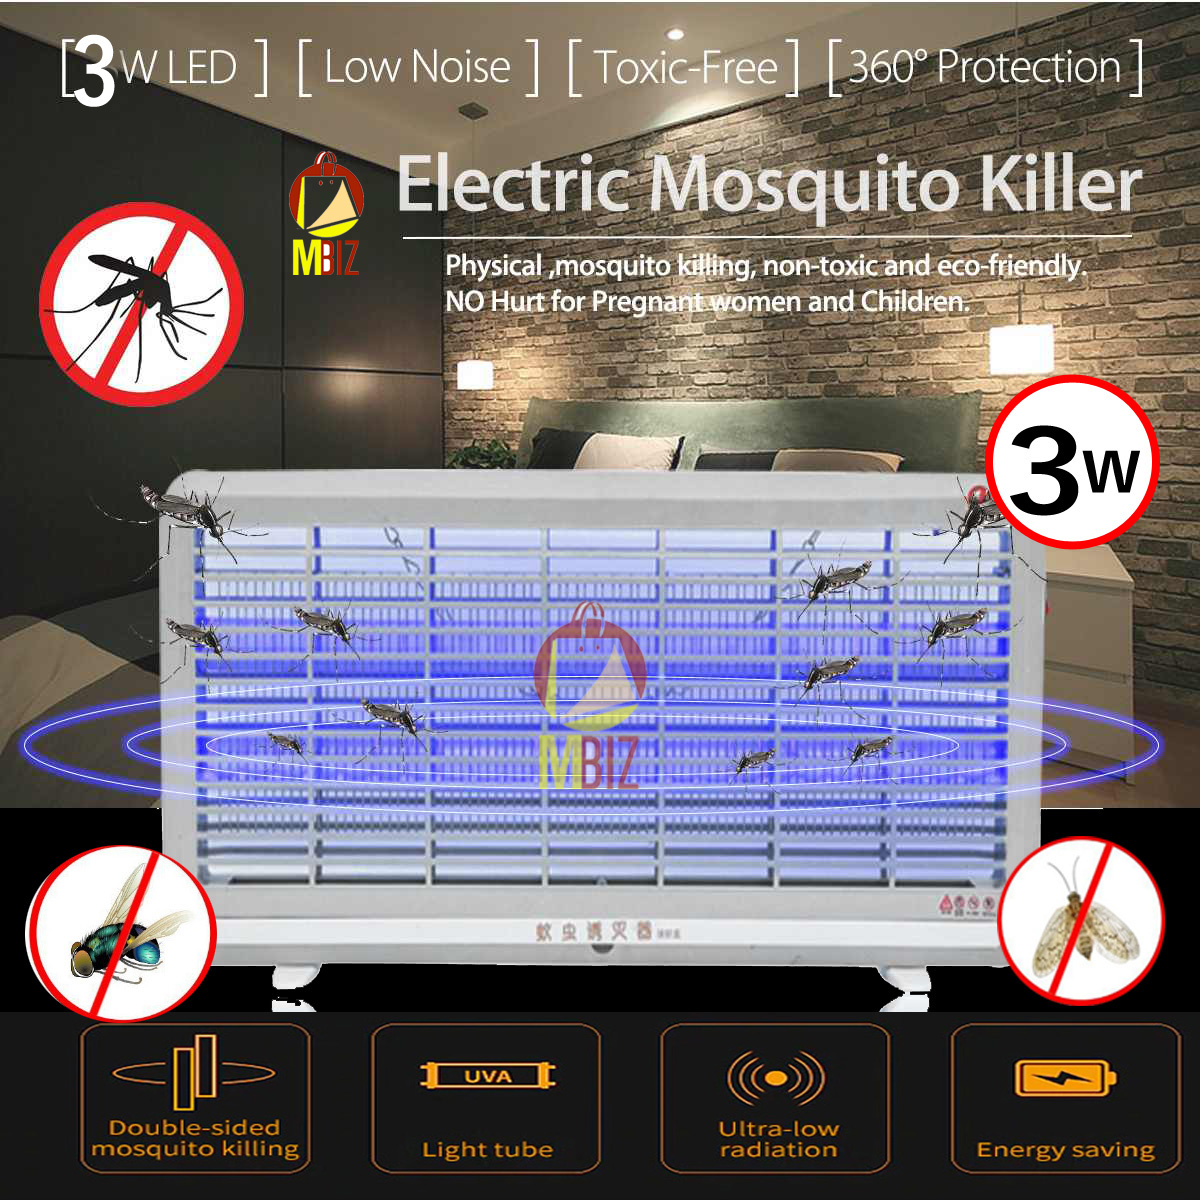 Maharaja Electronic UV Pest / Mosquito /Insect Killer Lamp 36 Wt. 1 yr. Warranty